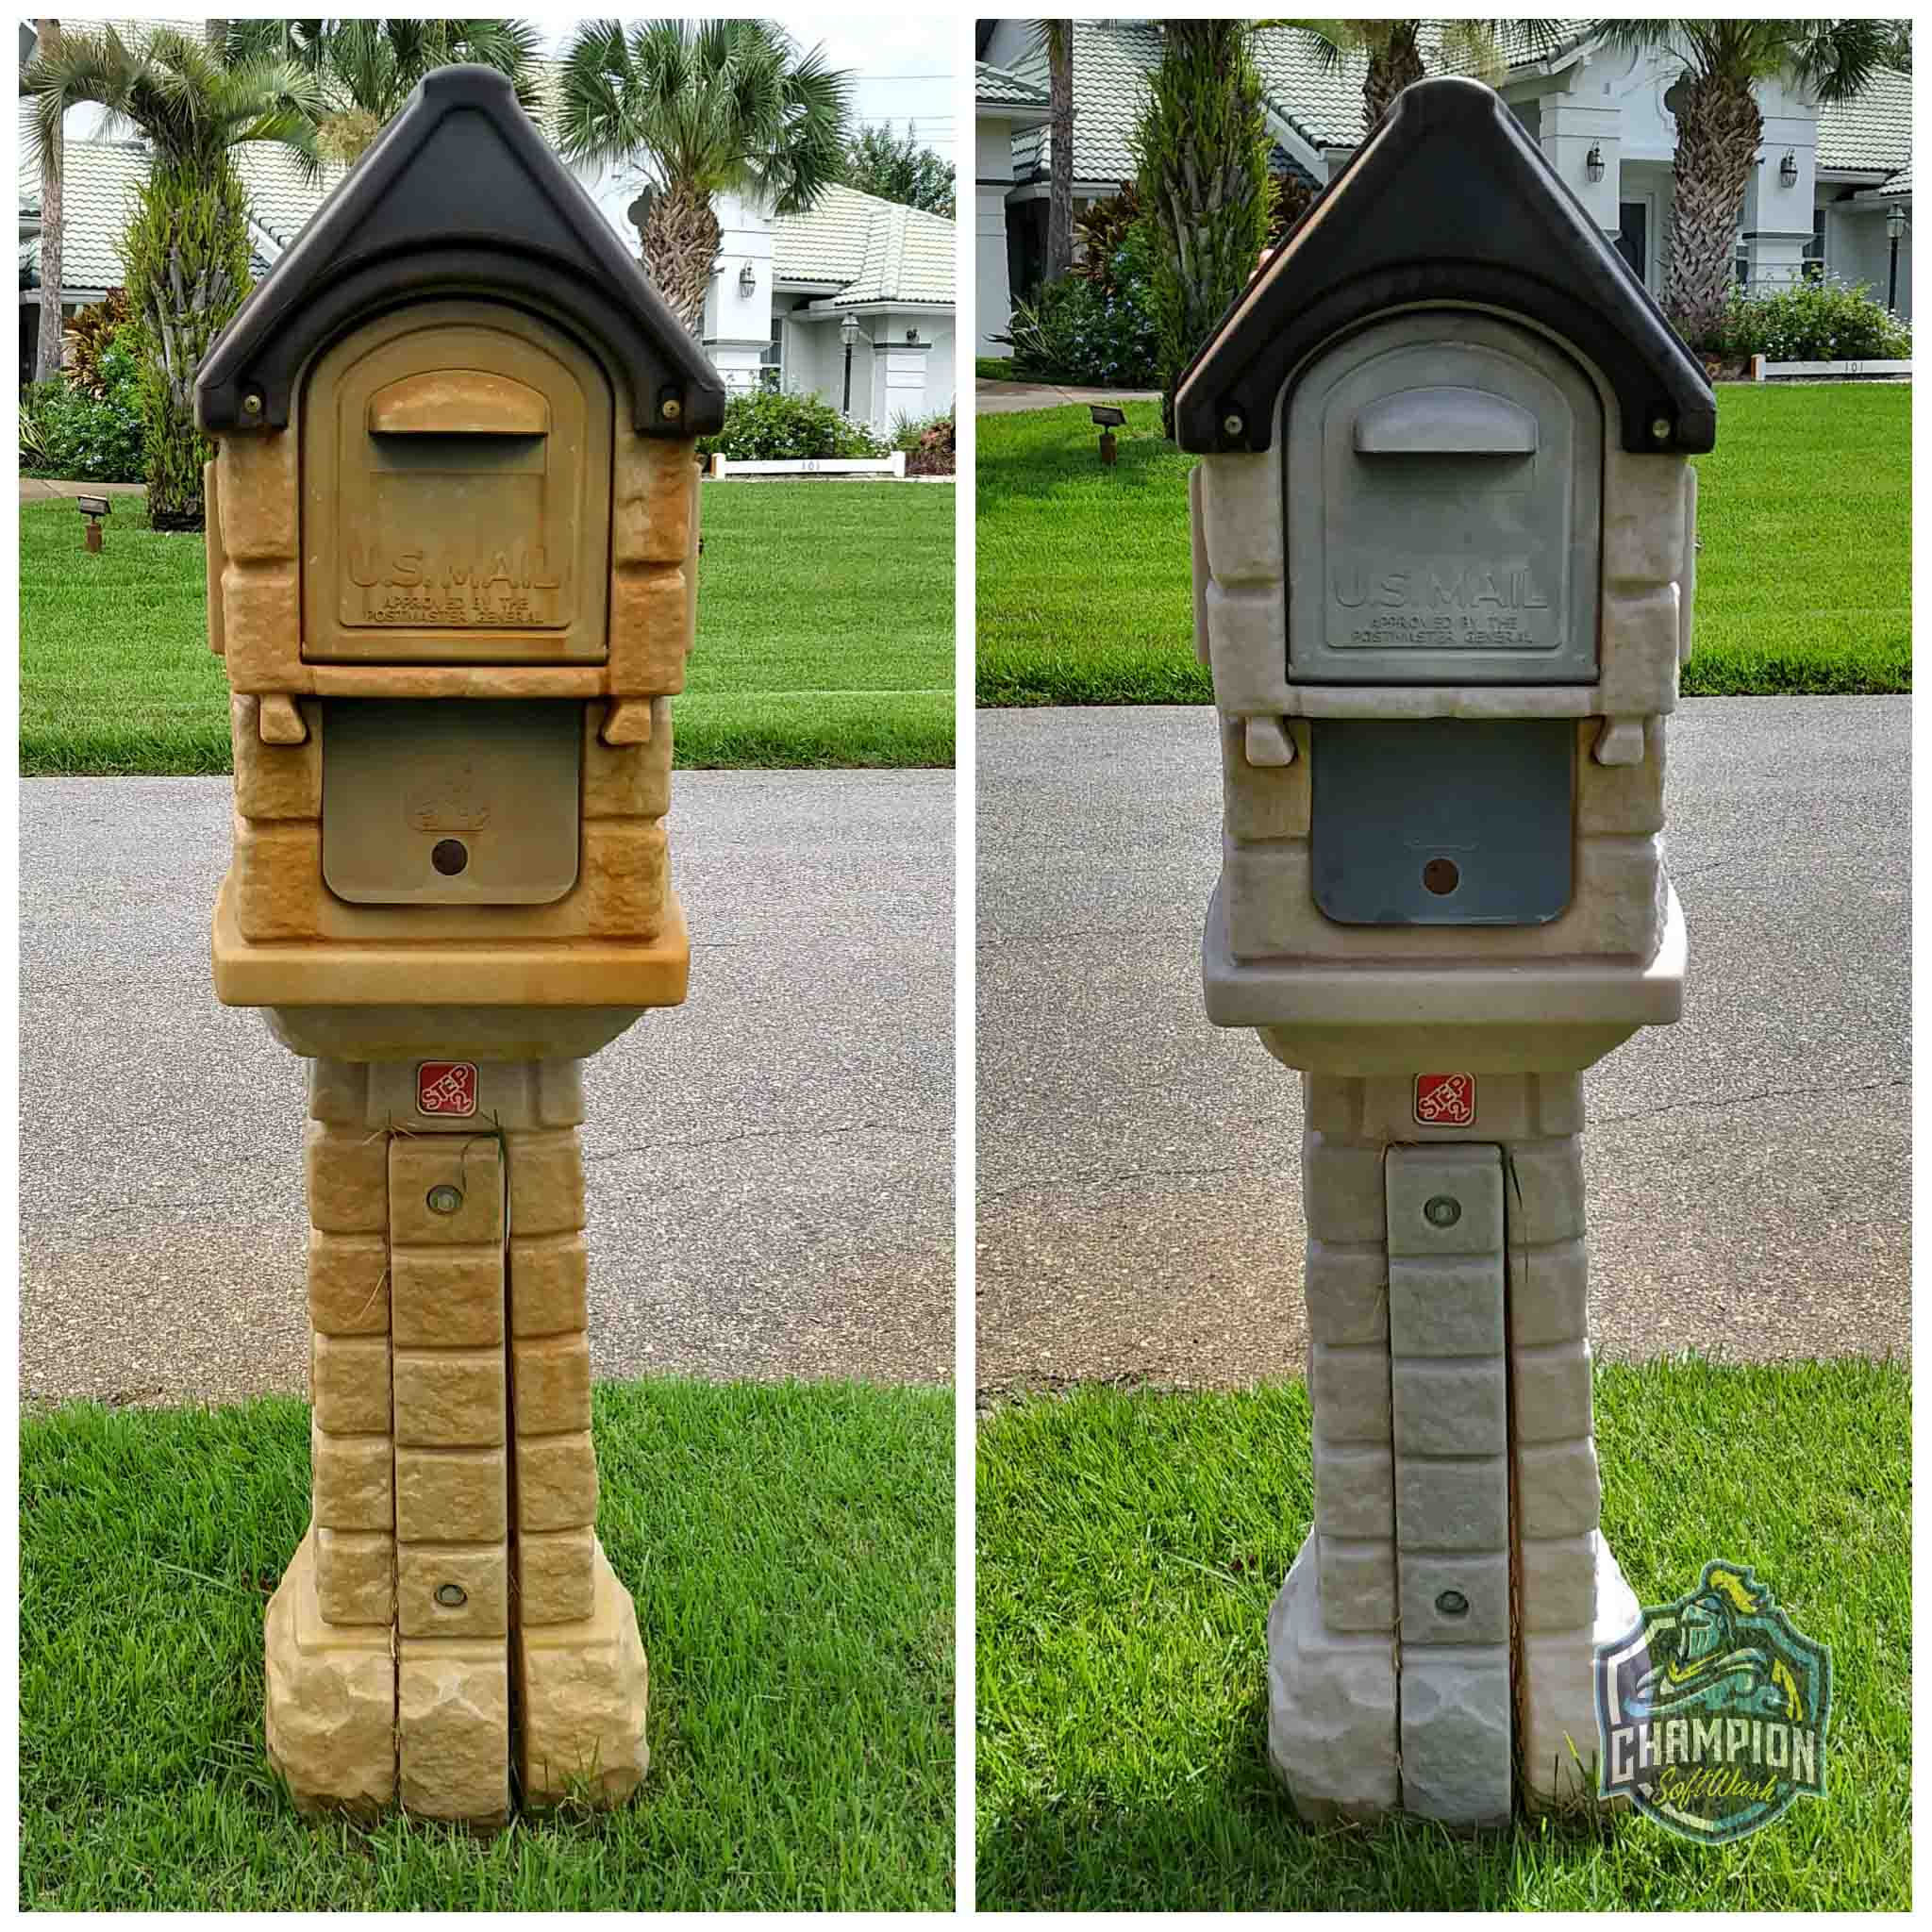 Irrigation rust removal before and after on a mailbox